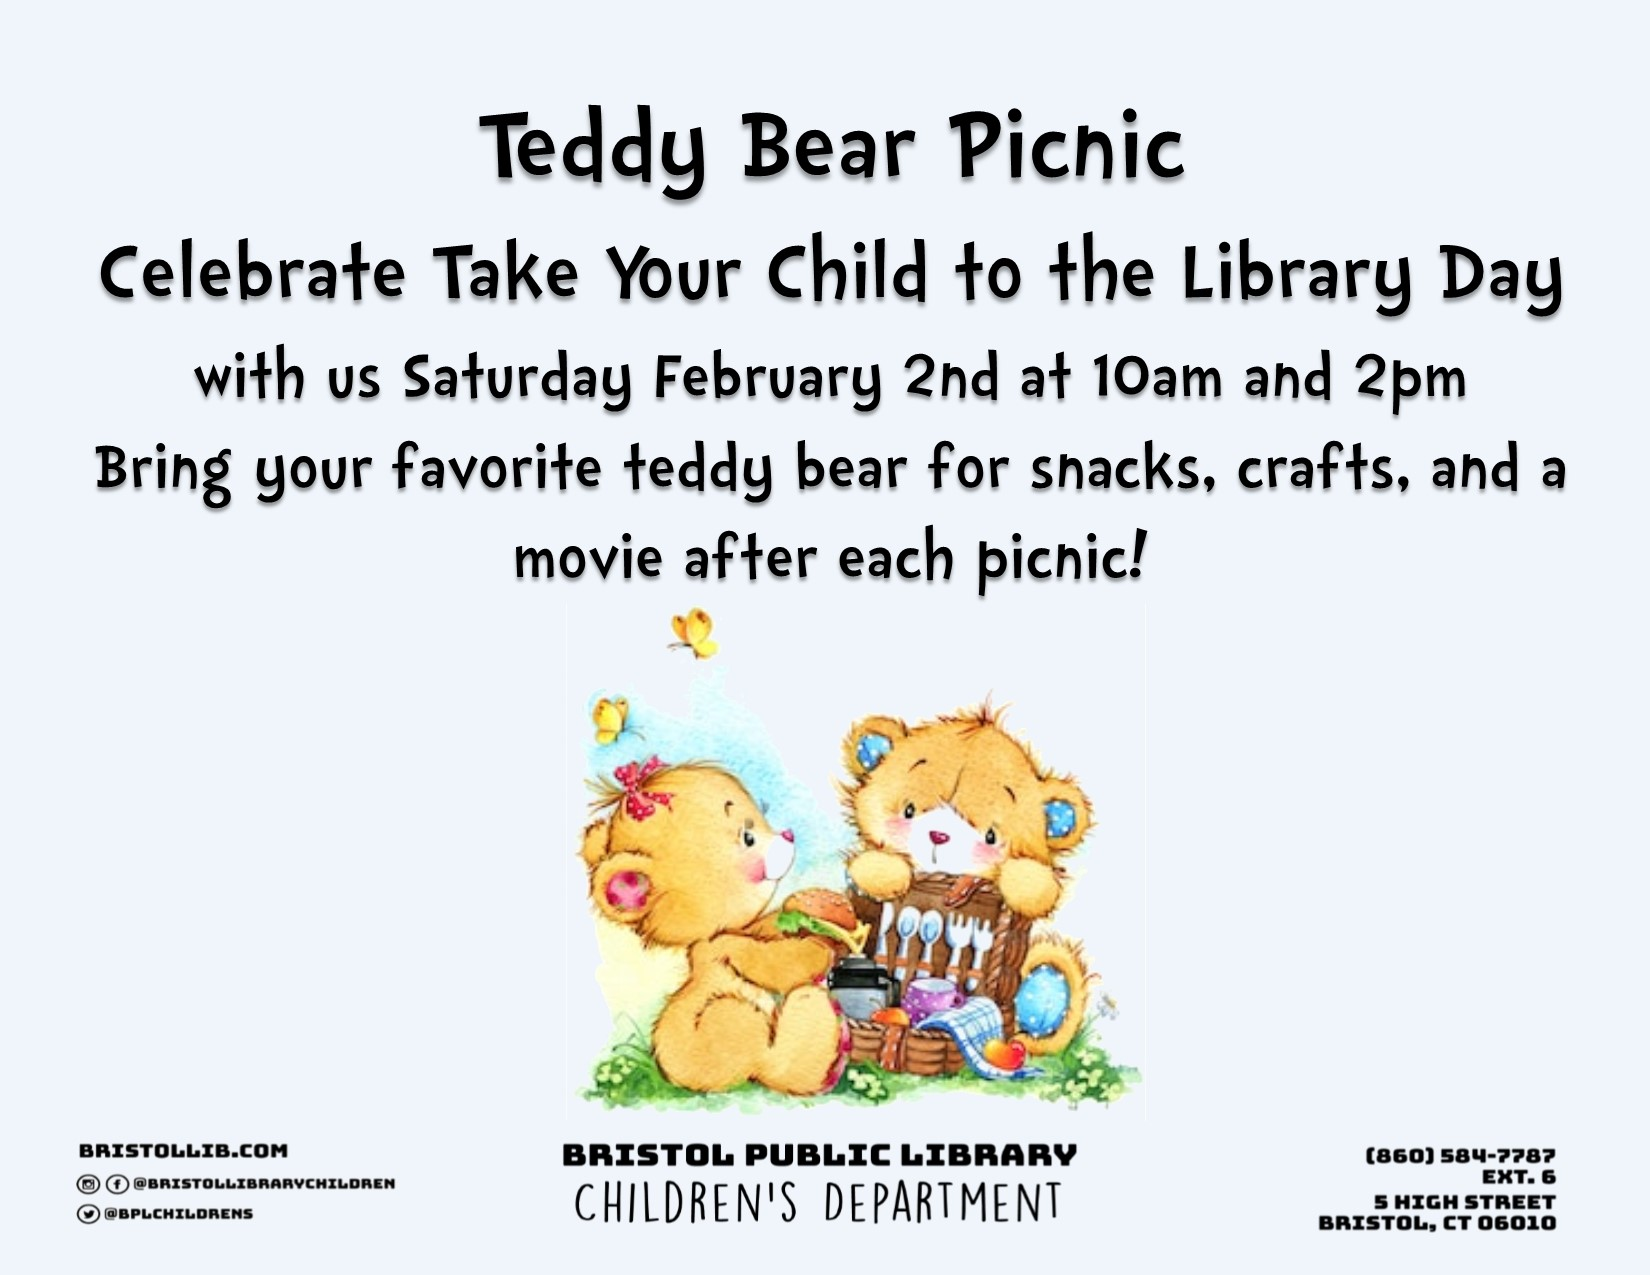 Take Your Child To The Library Day Teddy Bear Picnic